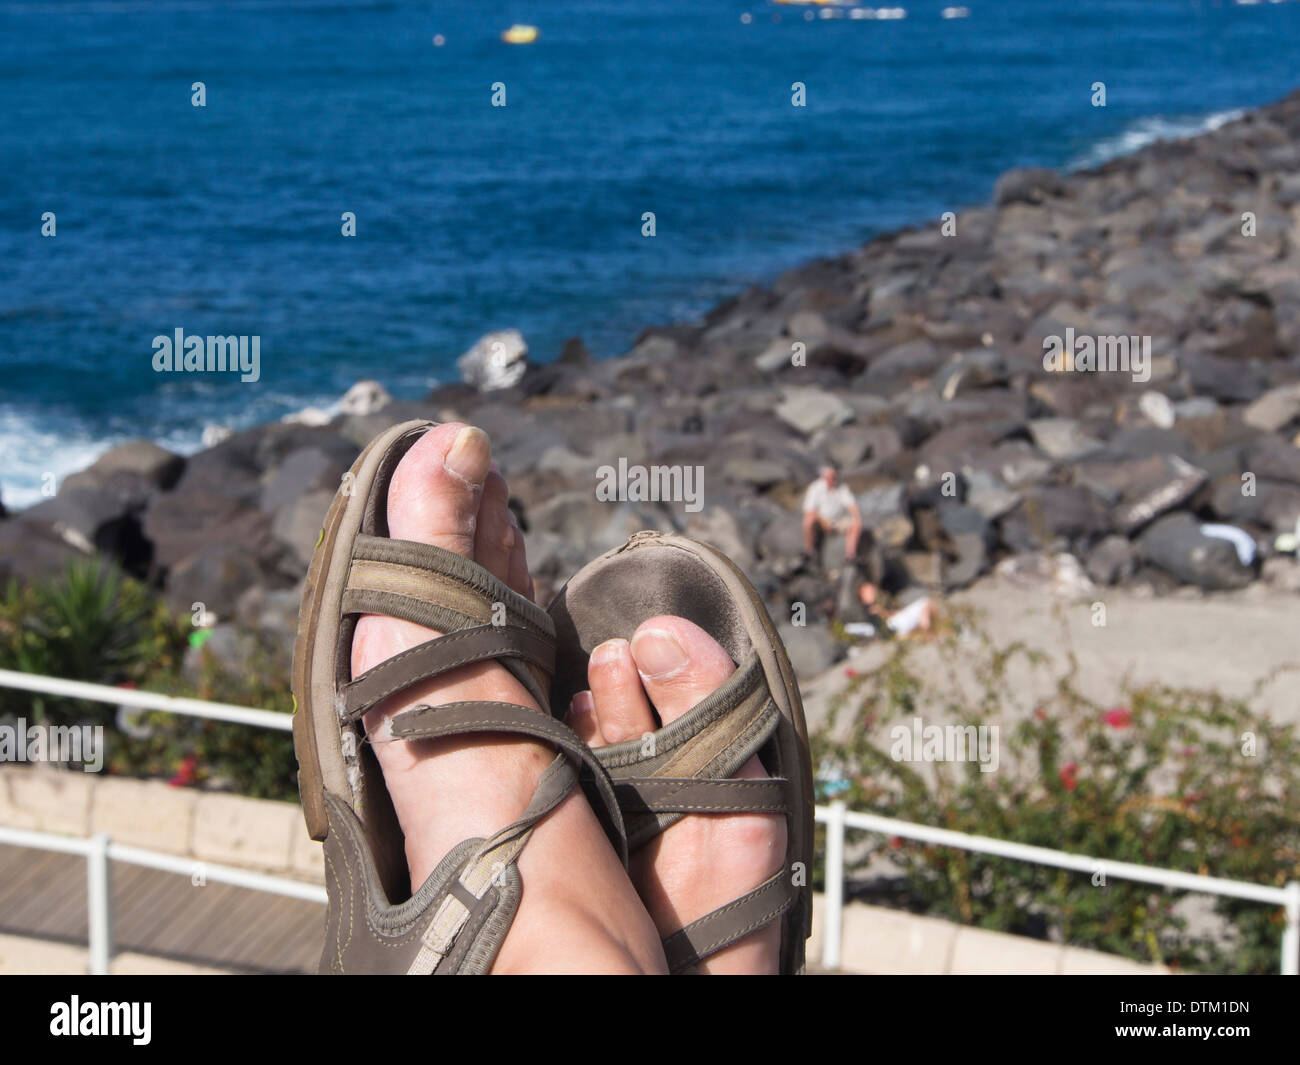 Photographers tired feet and worn out sandals resting along the seaside promenade in Playa Las Americas Tenerife  Spain - Stock Image